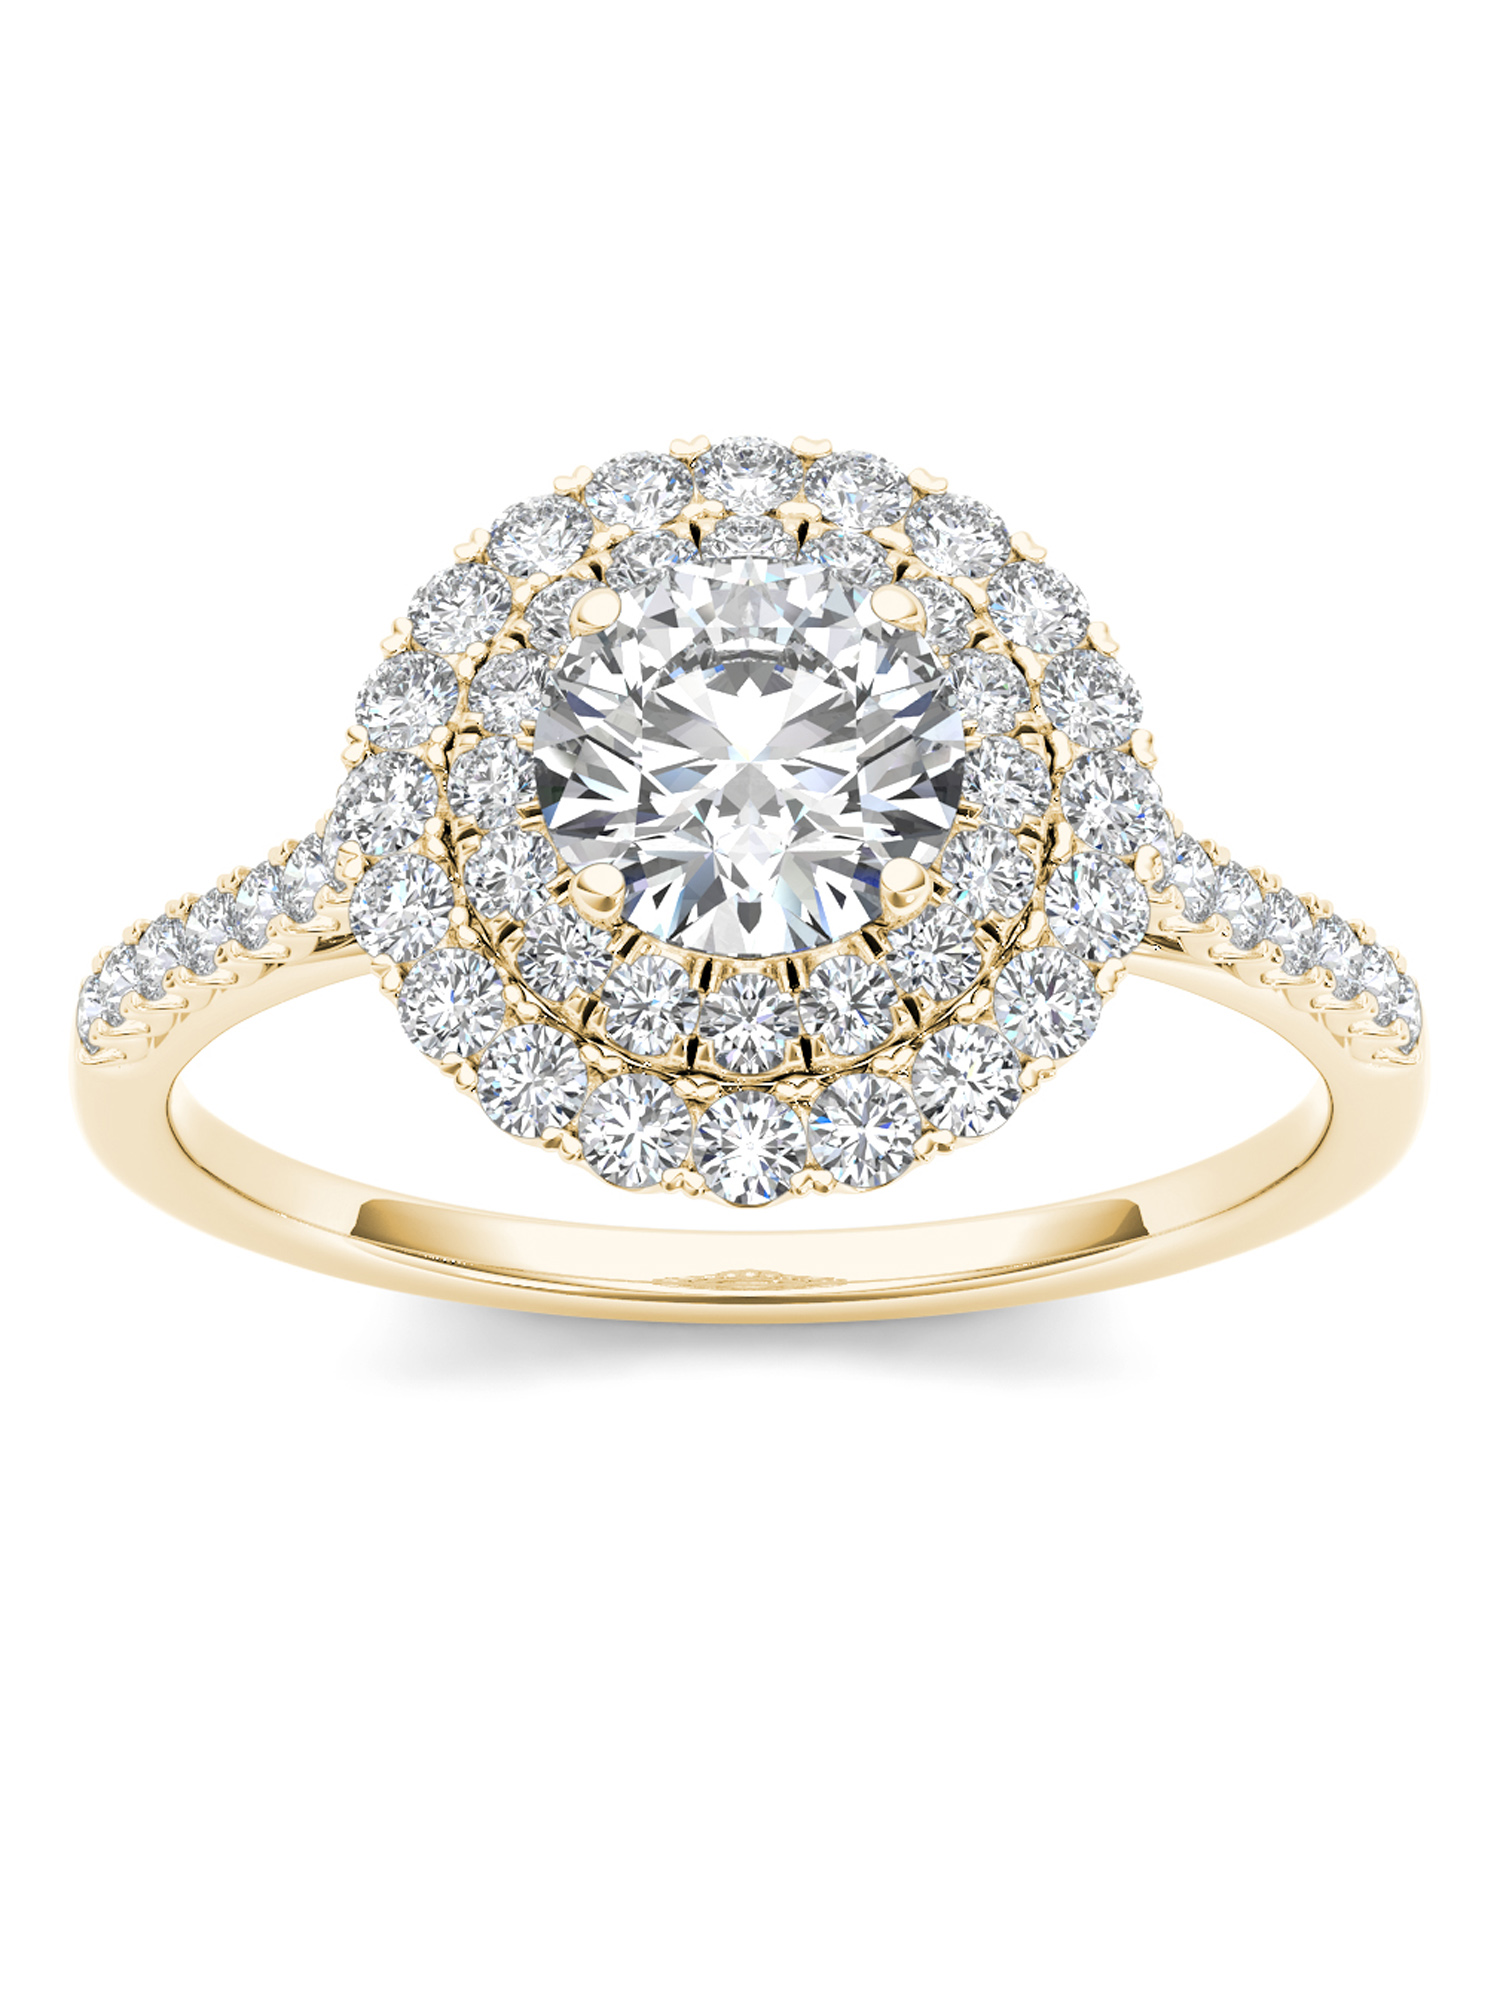 Imperial 1ct TDW Diamond 14K Yellow Gold Double Halo Engagement Ring by DE COUER NEW YORK LLC